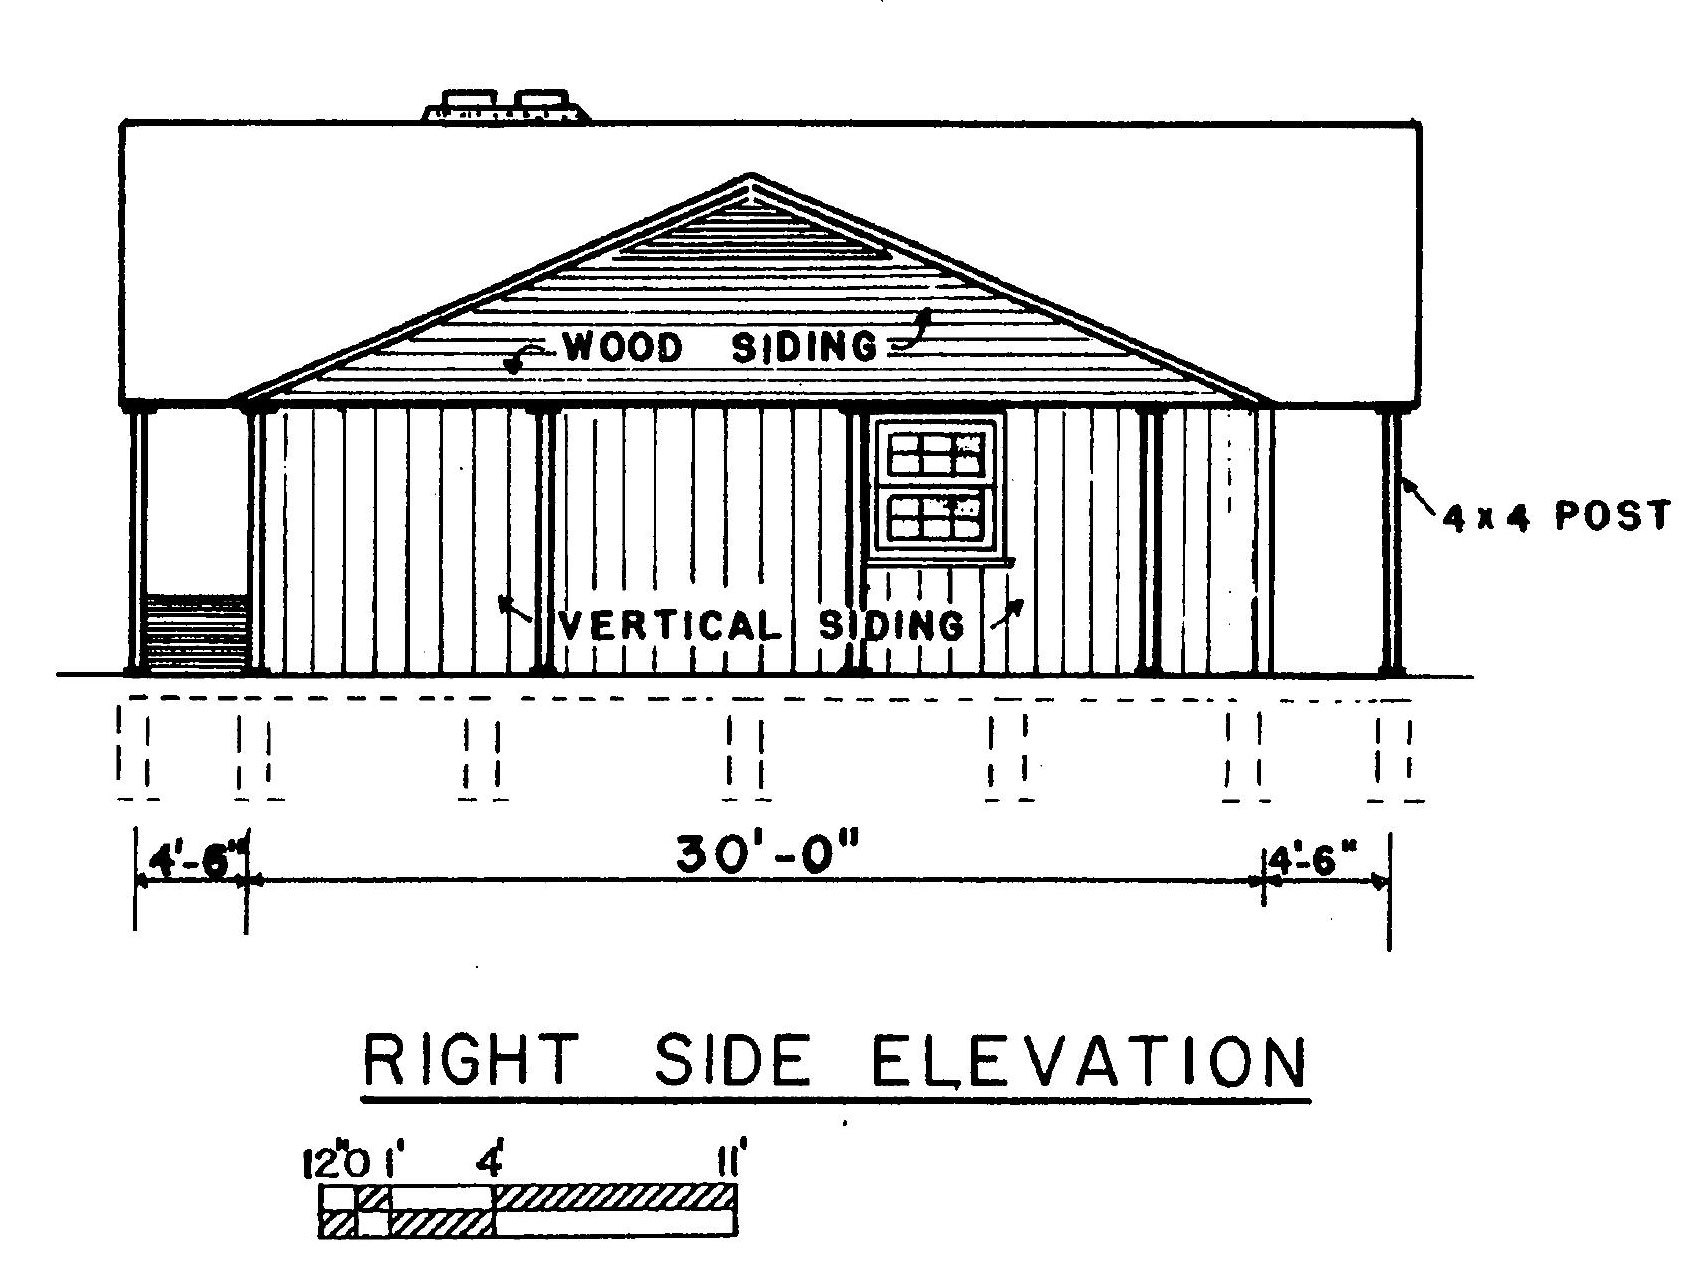 free woodworking plans for bat houses on ranch style house with porch, ranch house in sanford florida, ranch house floor plans, ranch house style kitchens, ranch style house interiors, ranch house layouts, ranch style house plan front view, ranch house plan for elevation, ranch walkout plans, ranch style house plans elevation, cabin plans with, ranch log house,